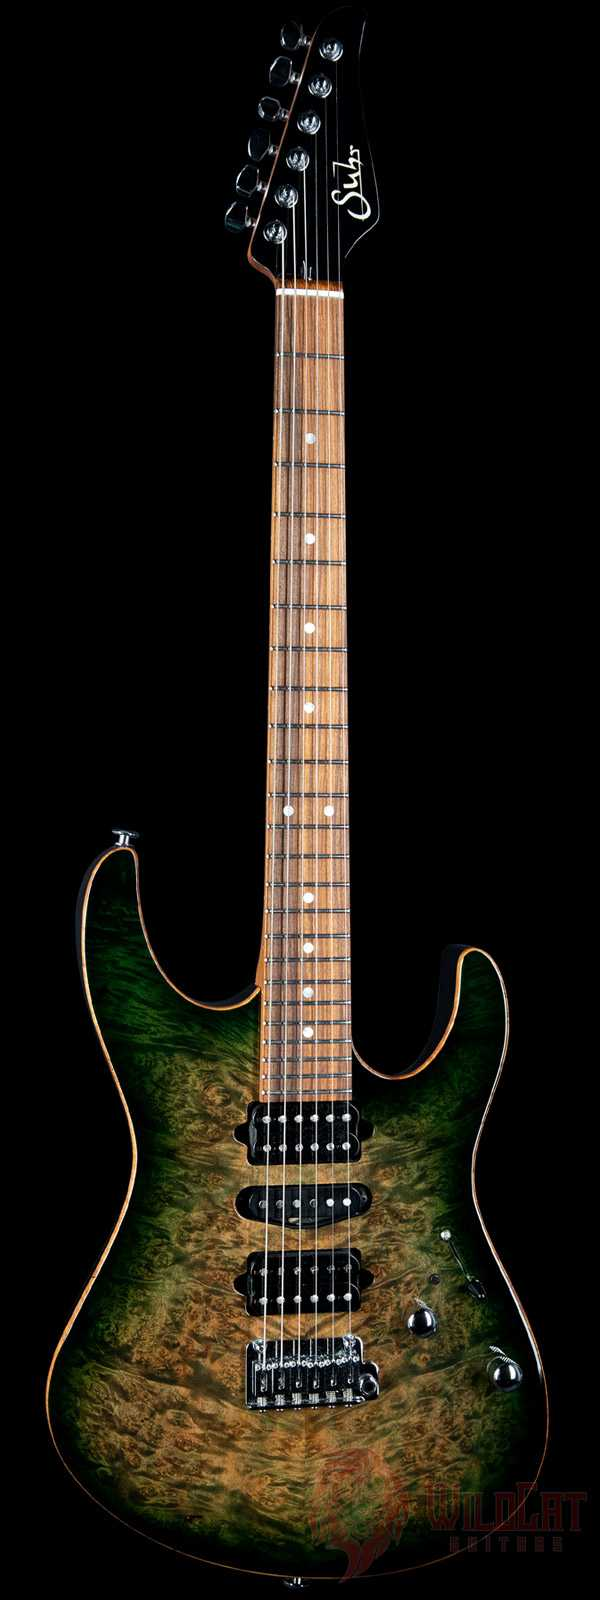 Suhr Modern Burl Top Green Burst Roasted Maple Neck